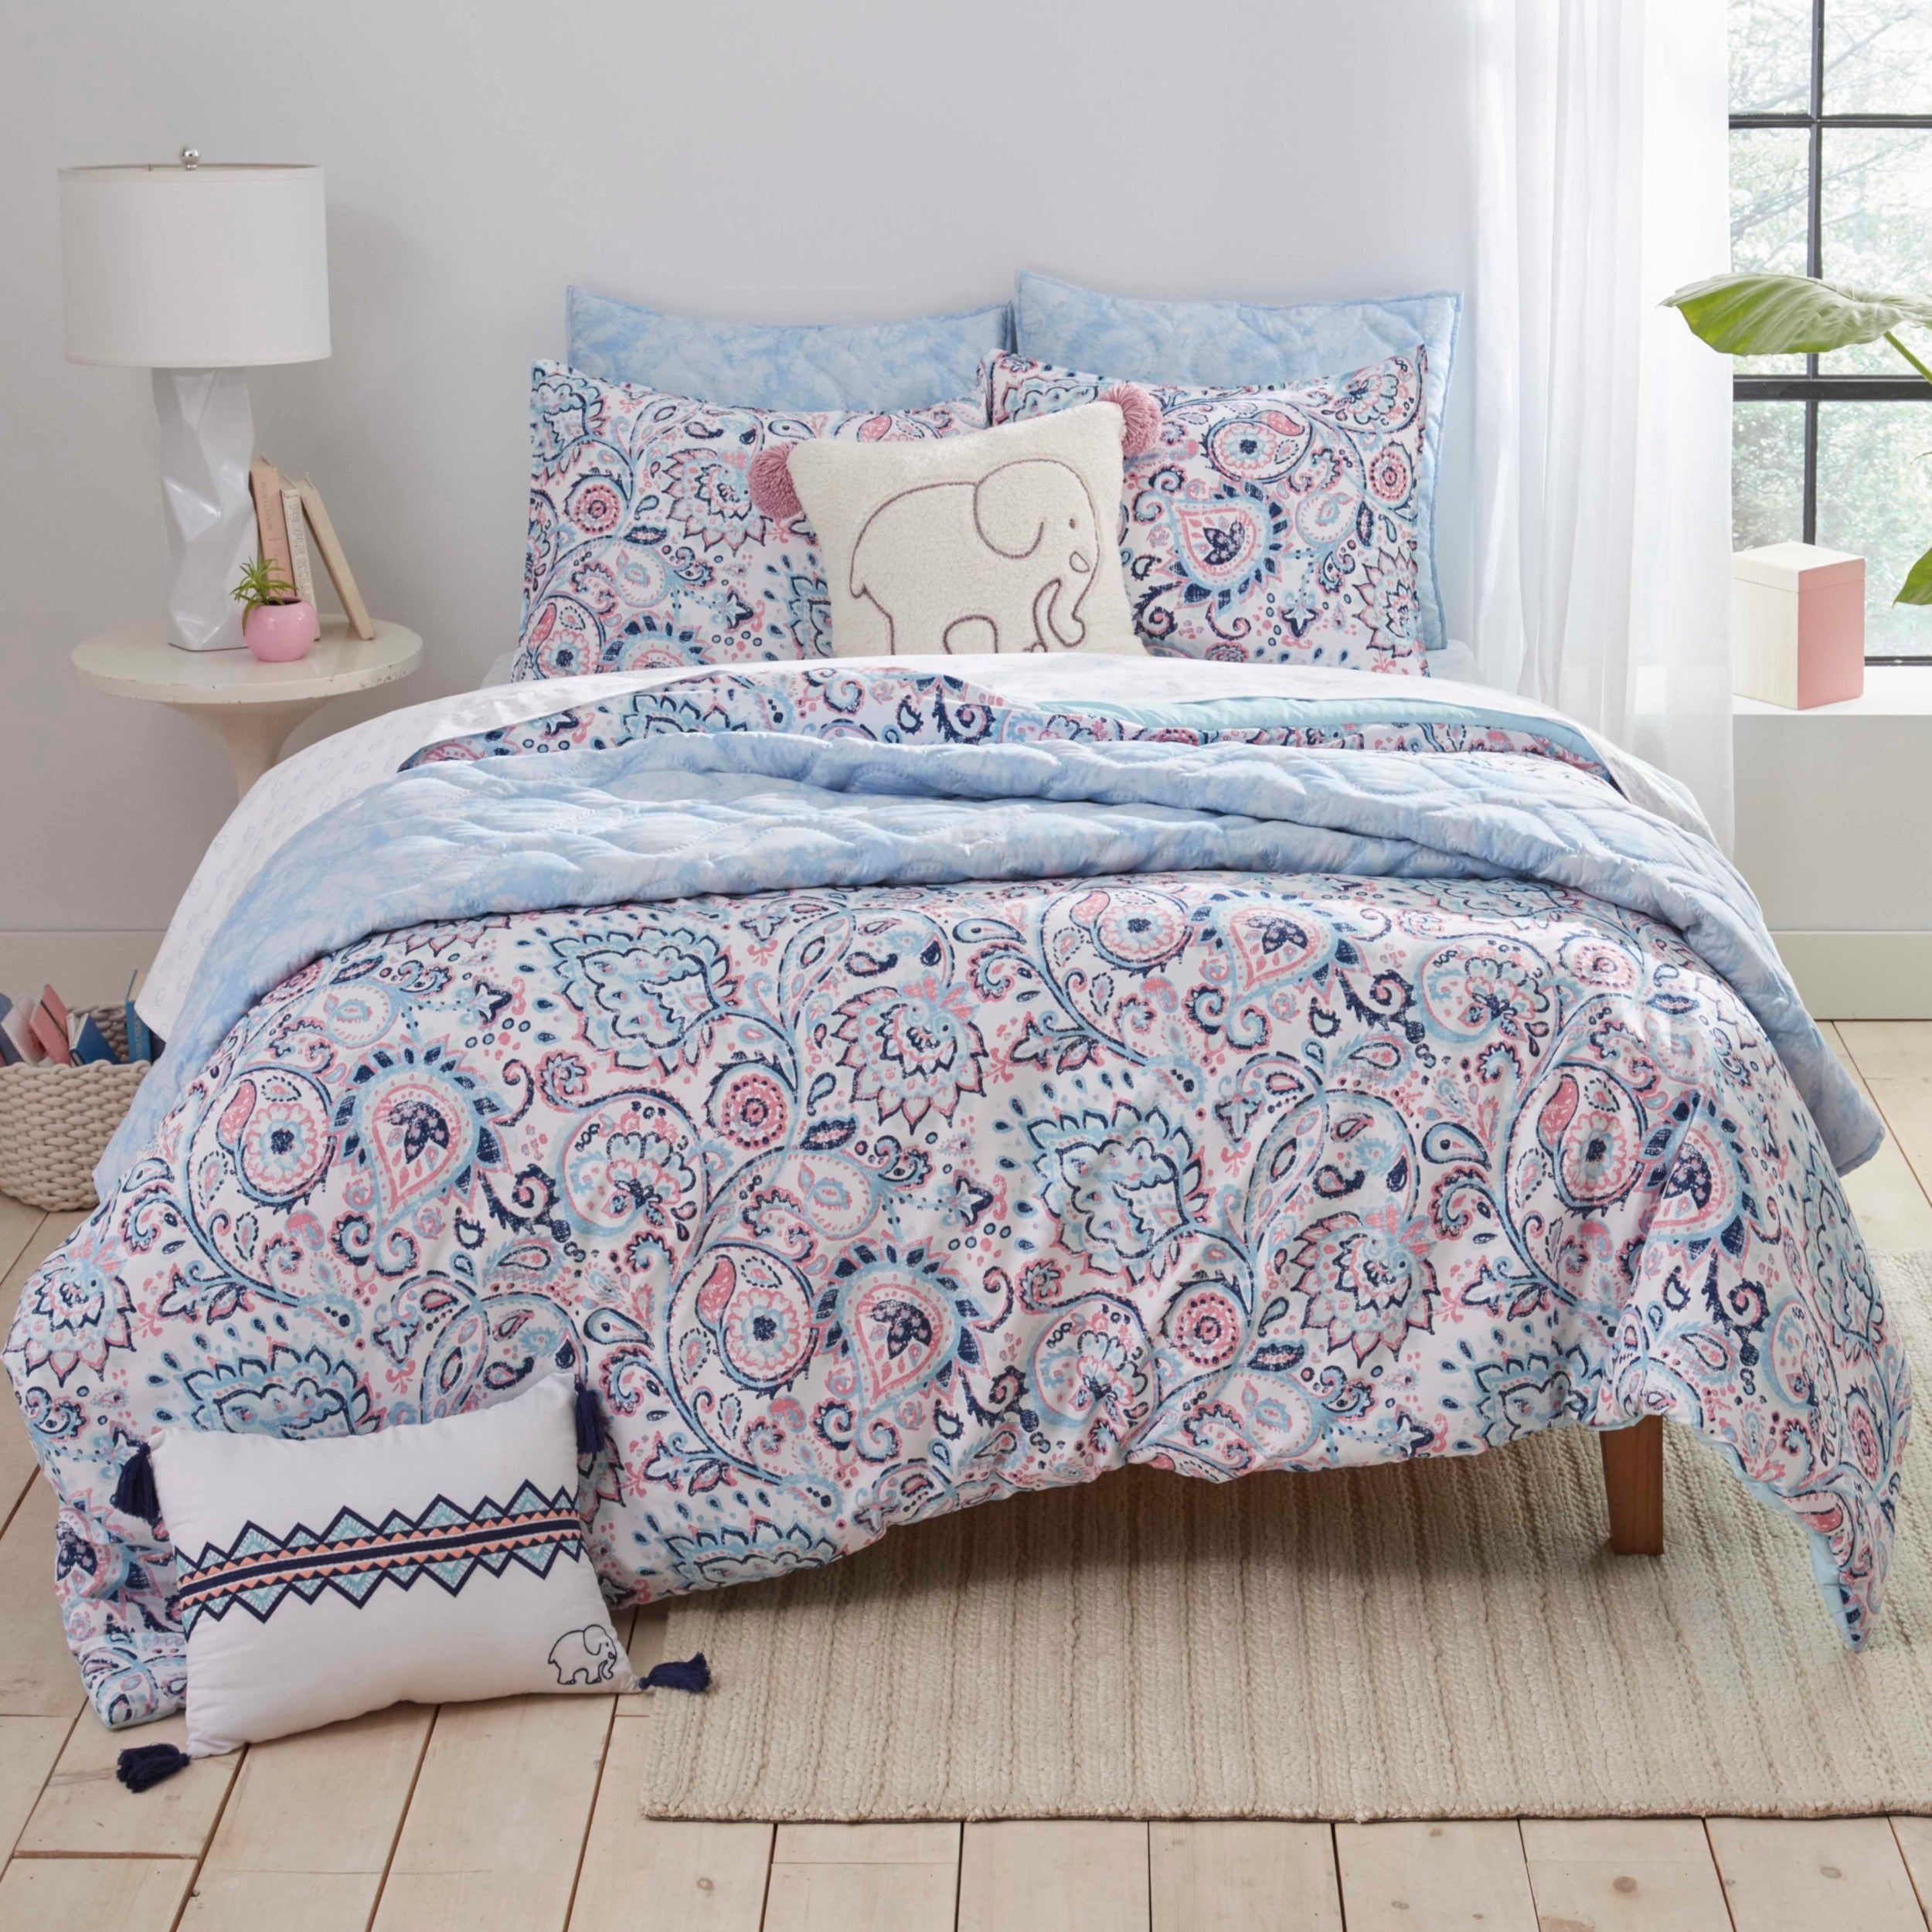 Luxury ANOUK Duvet Covers Quilt Covers Reversible Bedding Sets All Sizes